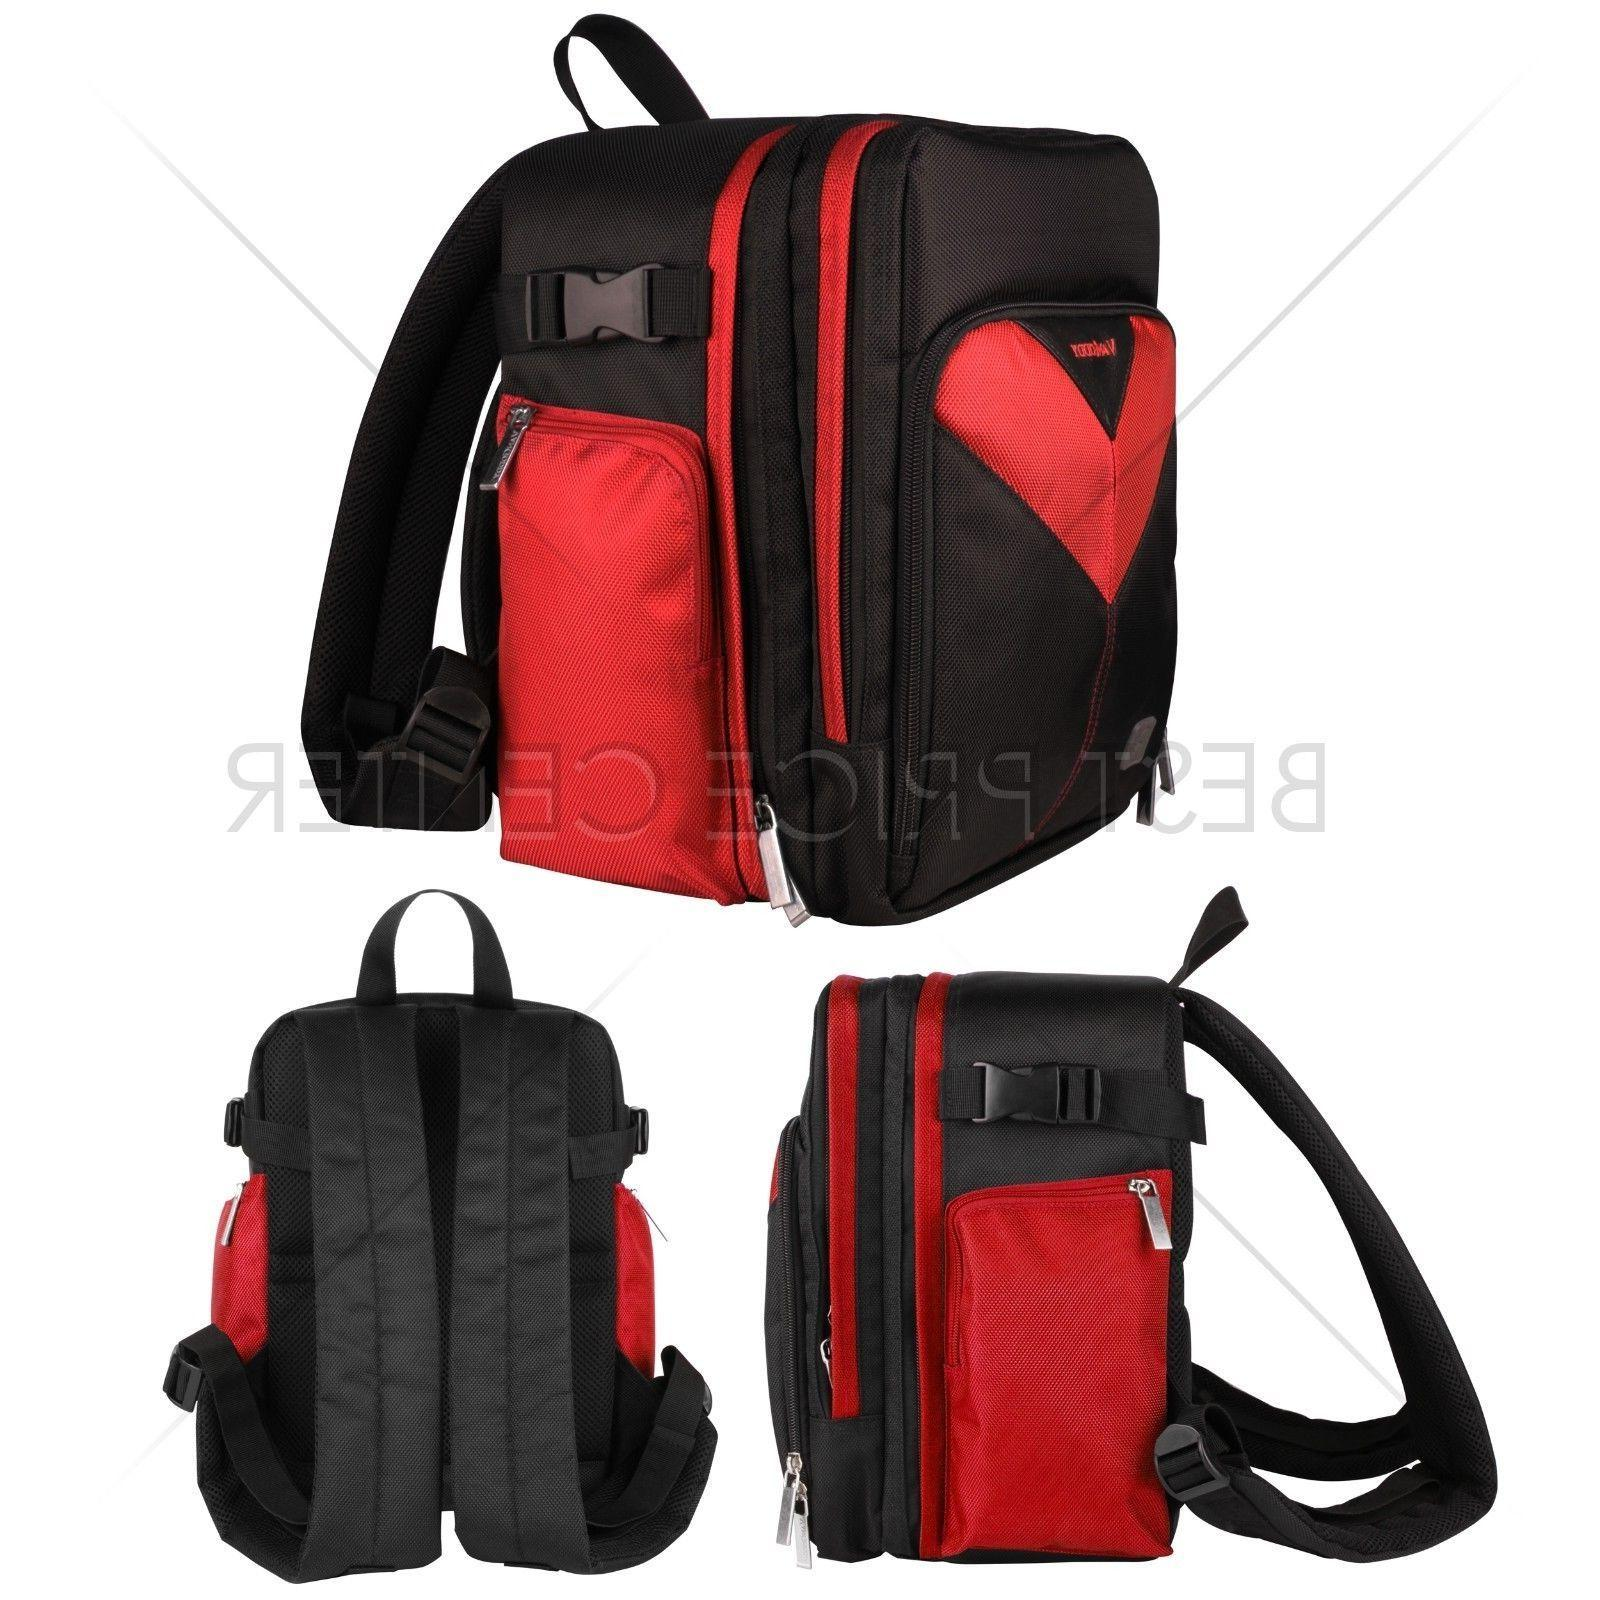 For SLR PRO Camera Bag